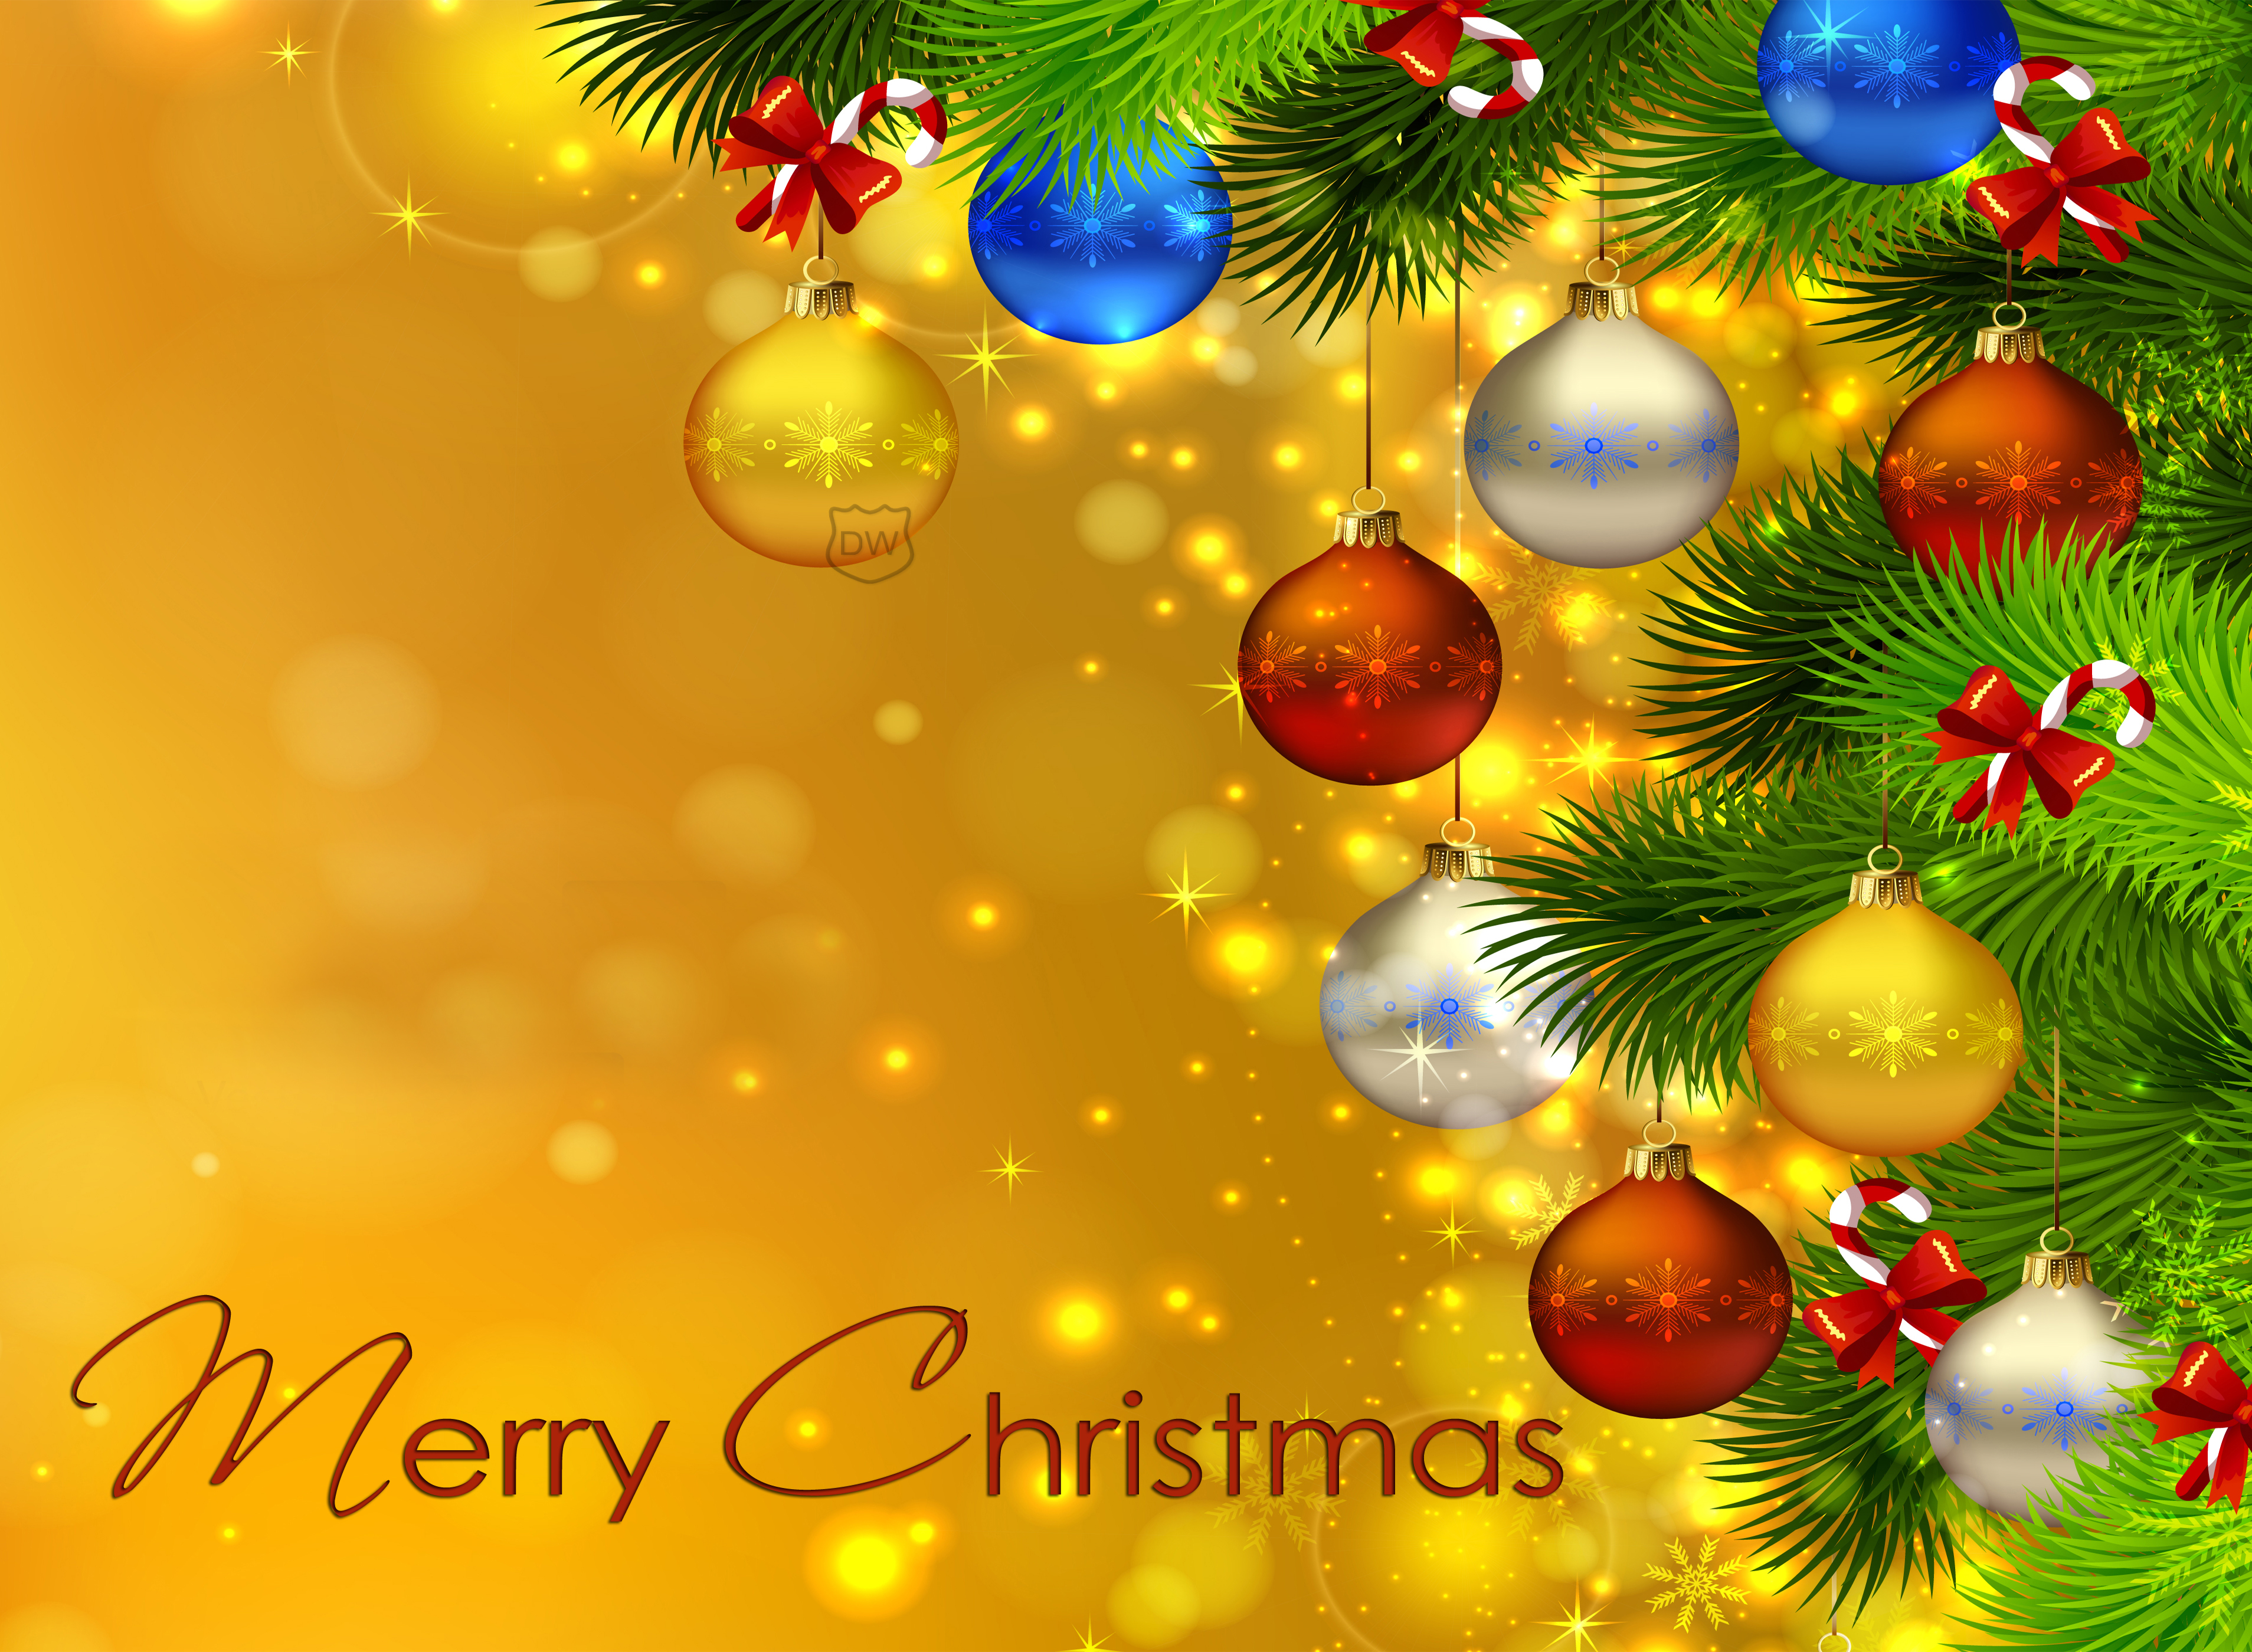 Merry Christmas 2014 Wallpapers - Movie HD Wallpapers